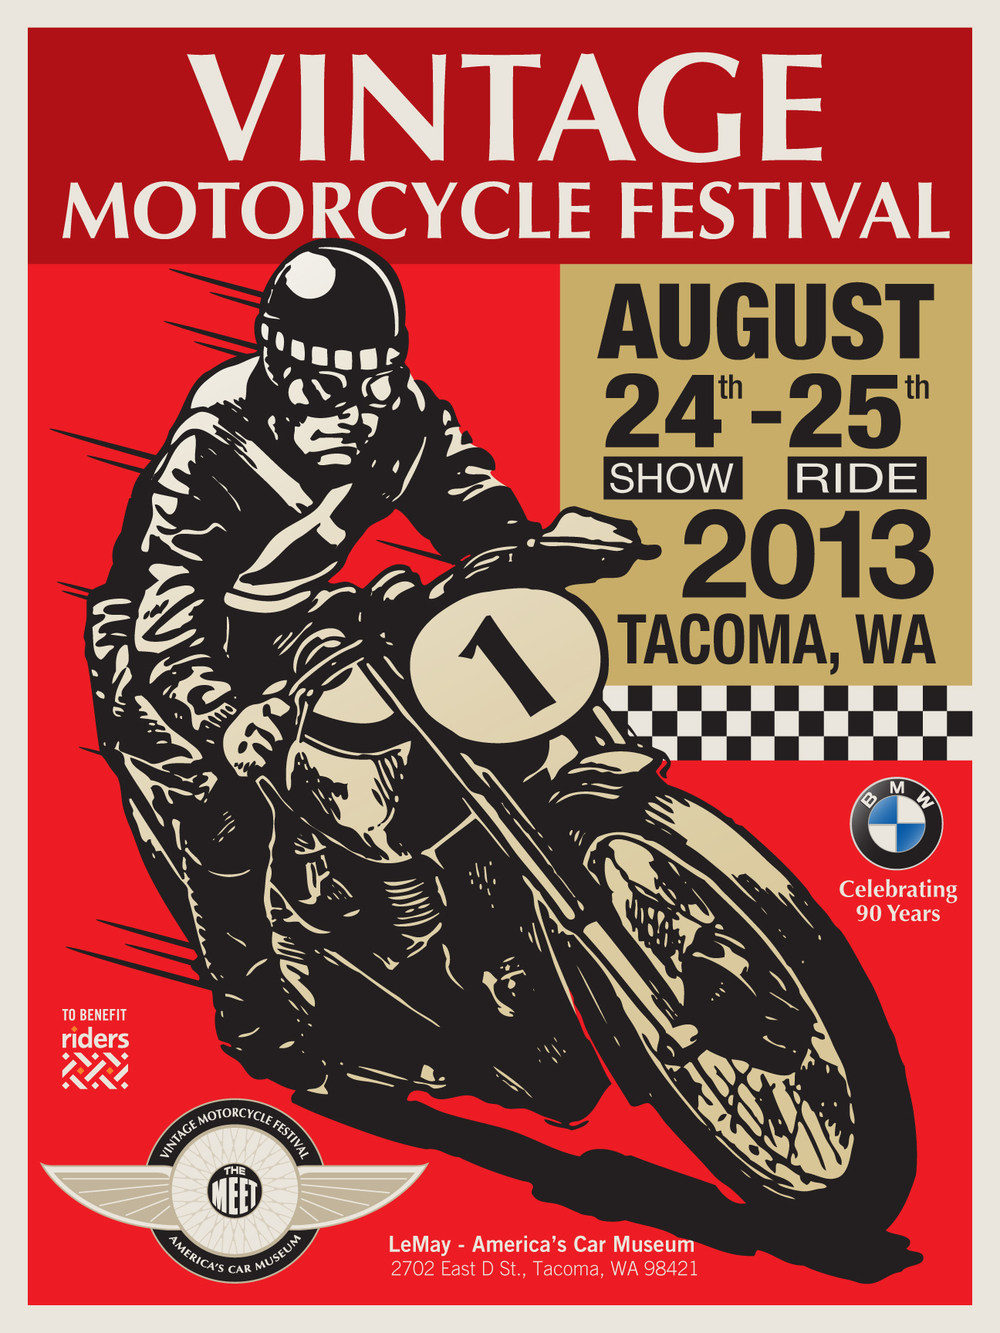 2013 Vinage Motorcycle Festival